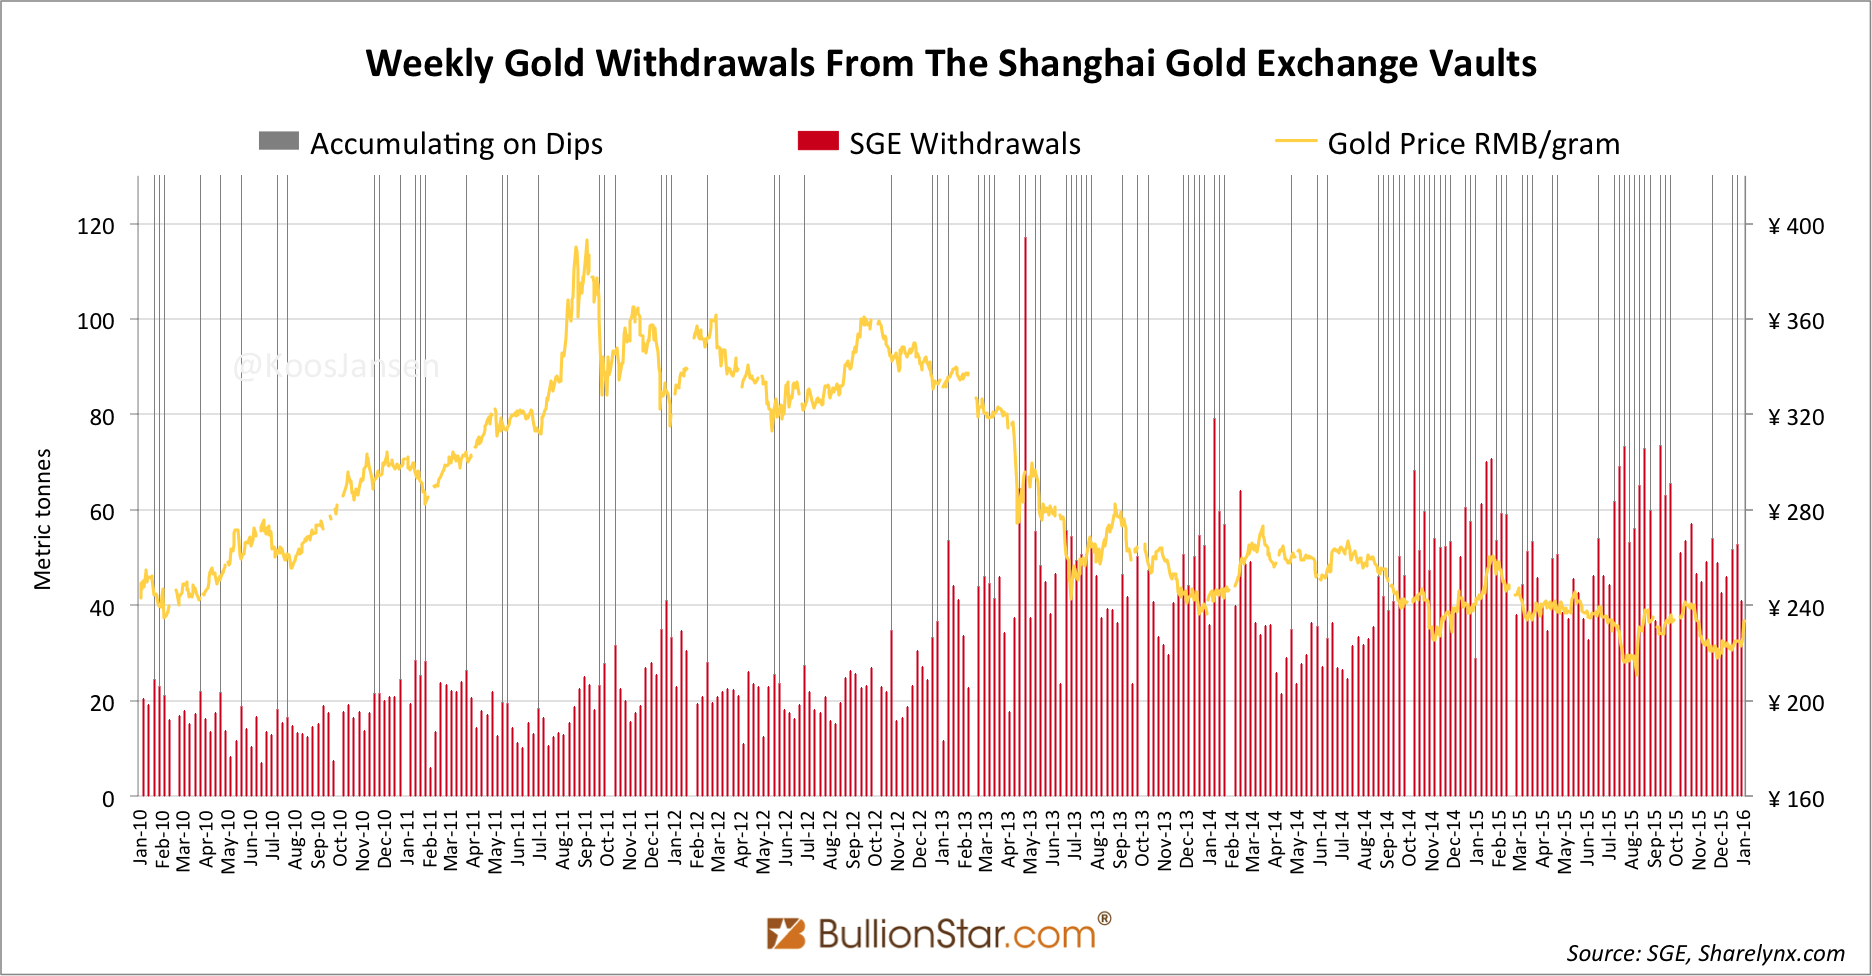 The SGE published weekly withdrawal data until January 2016.